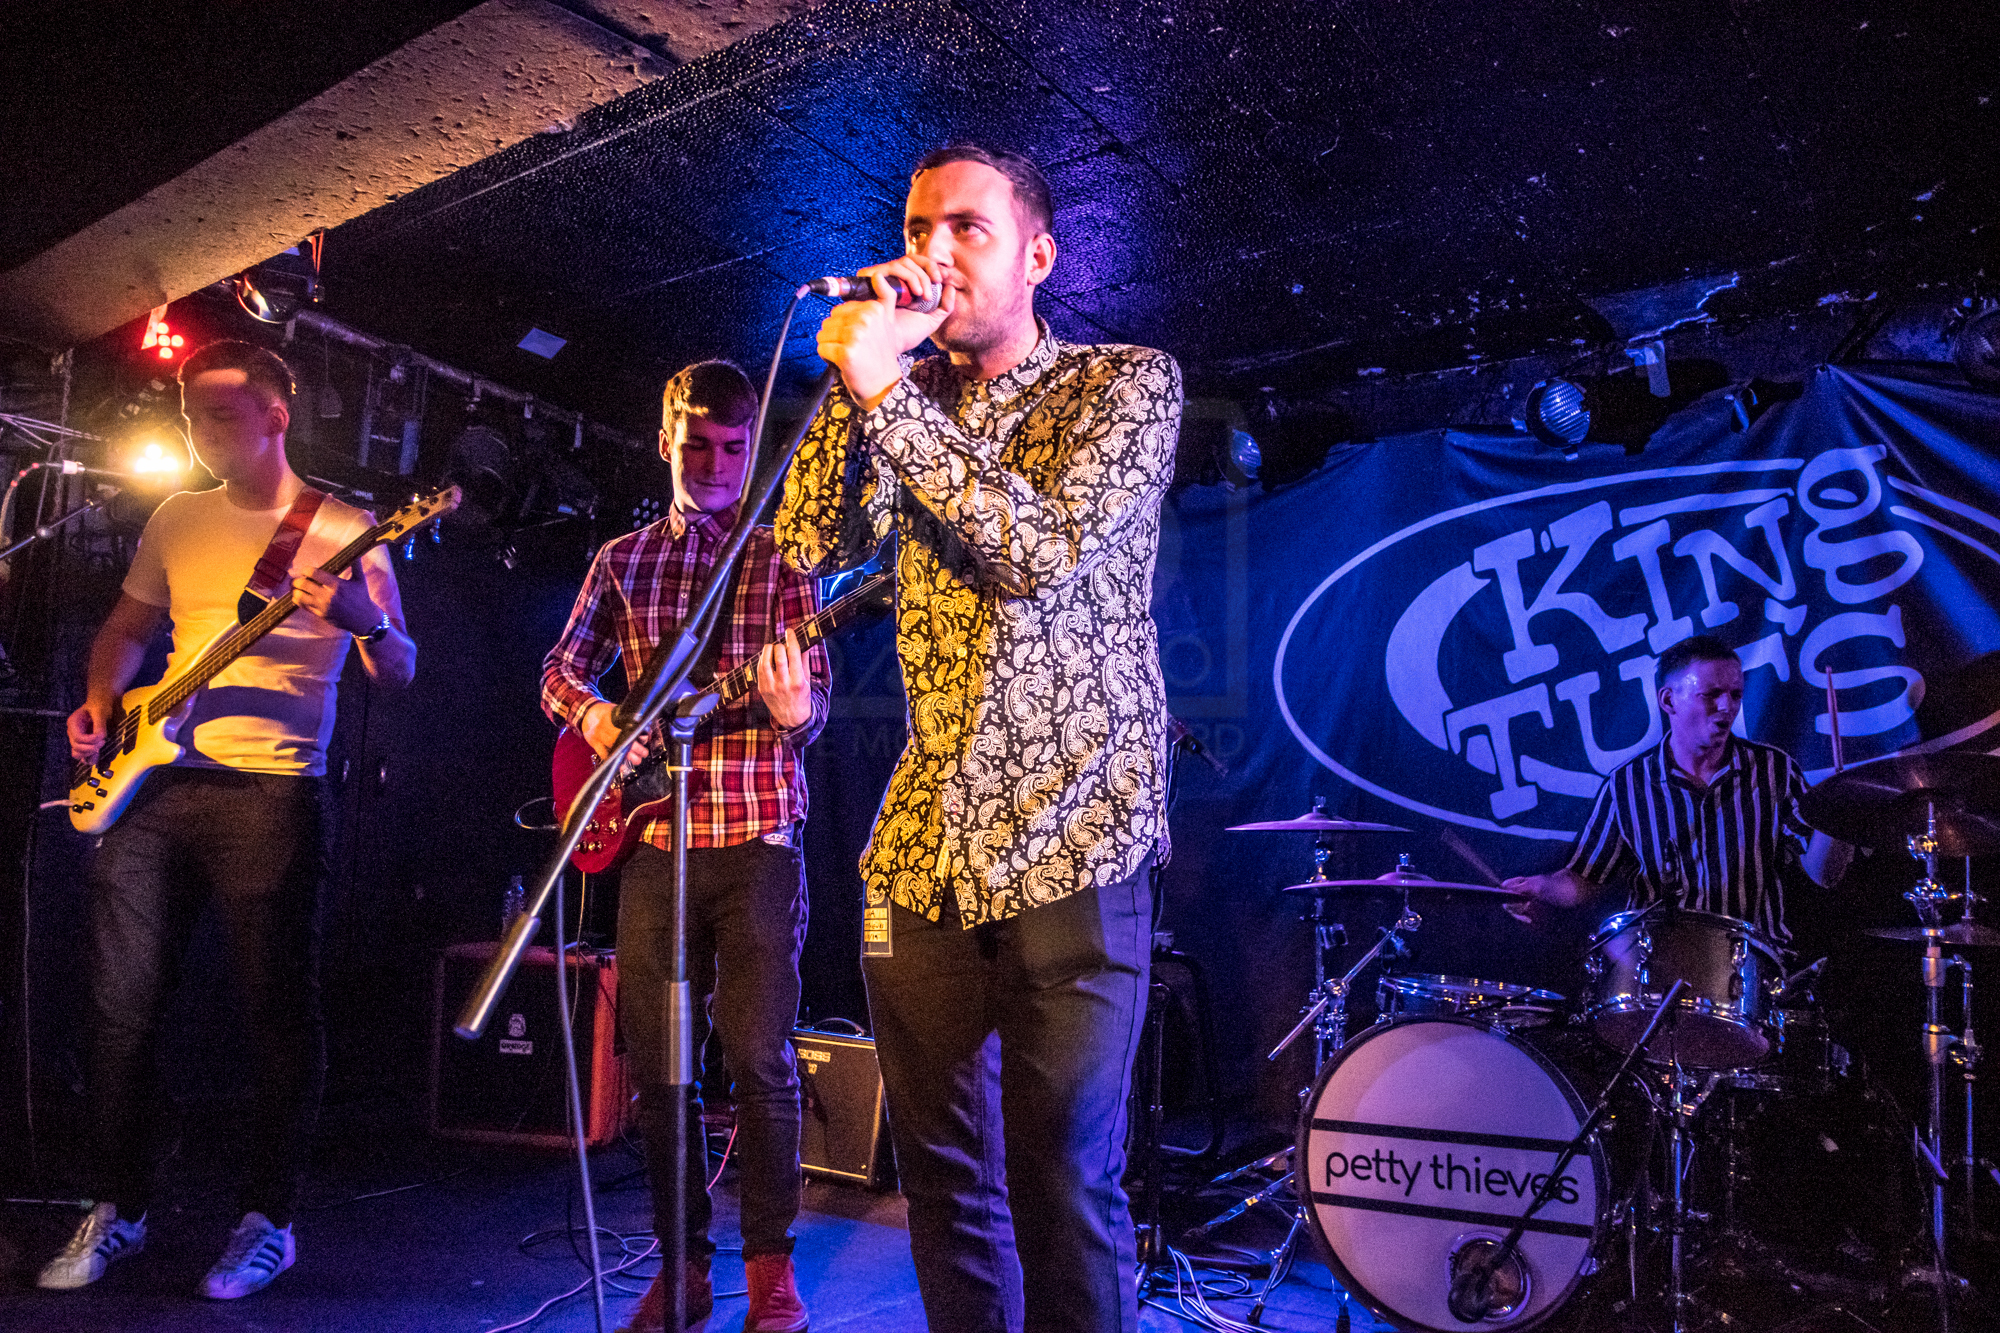 PETTY THIEVES PERFORMING AT GLASGOW'S KING TUT'S WAH WAH HUT - 01.03.2019  PICTURE BY: STEPHEN WILSON PHOTOGRAPHY